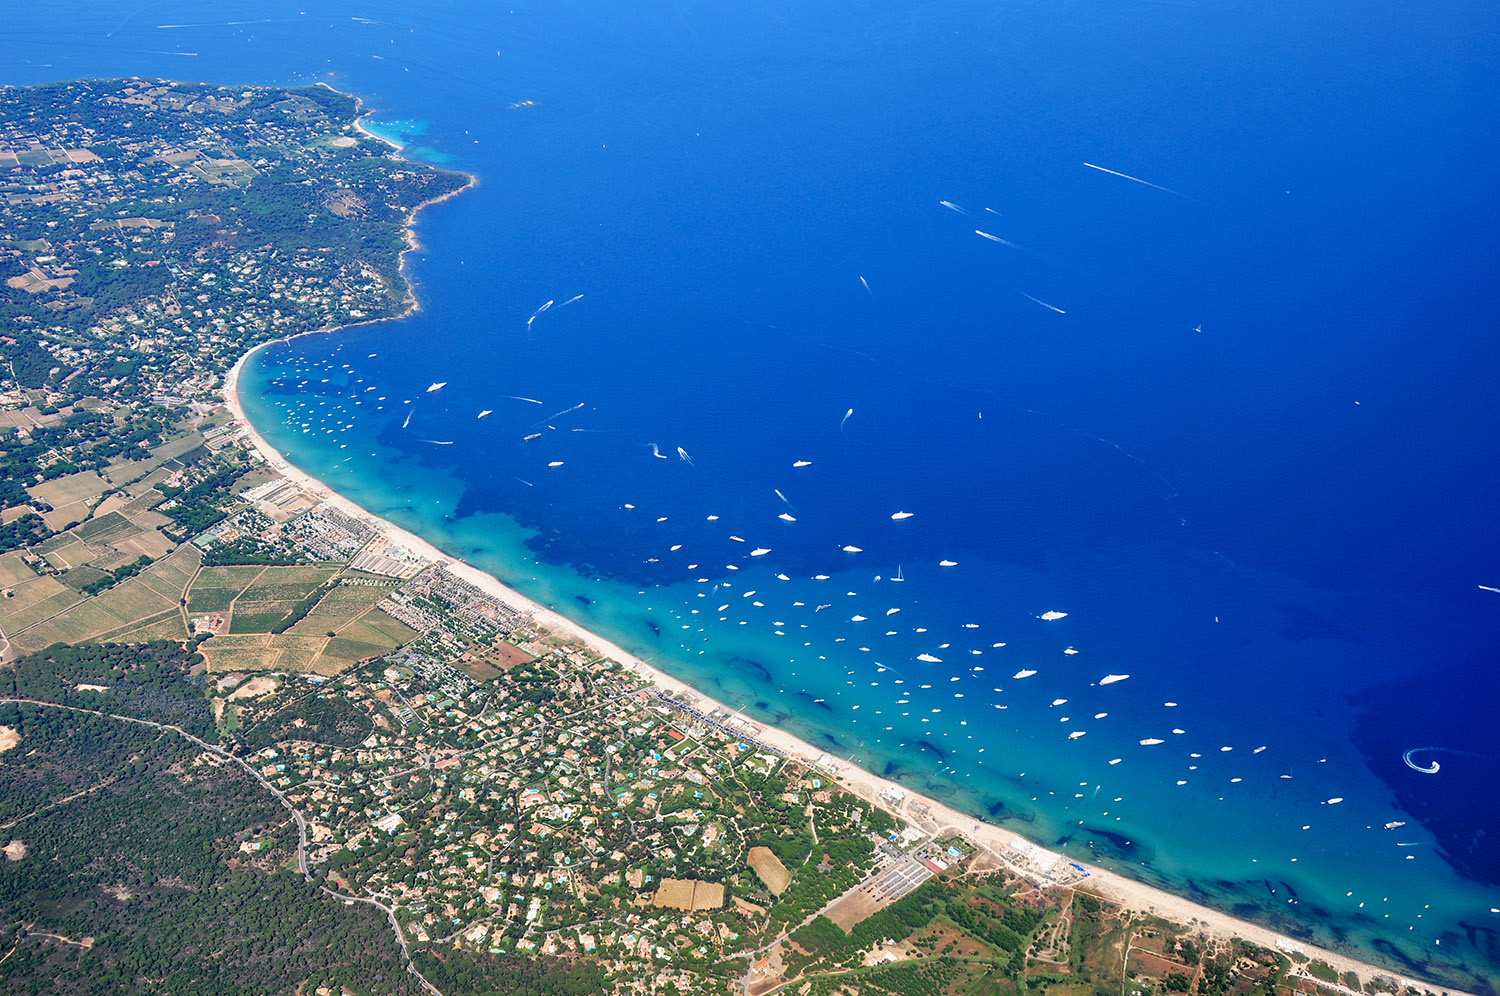 Aerial view of the Bay of Pampelonne (Gulf of Saint-Tropez)